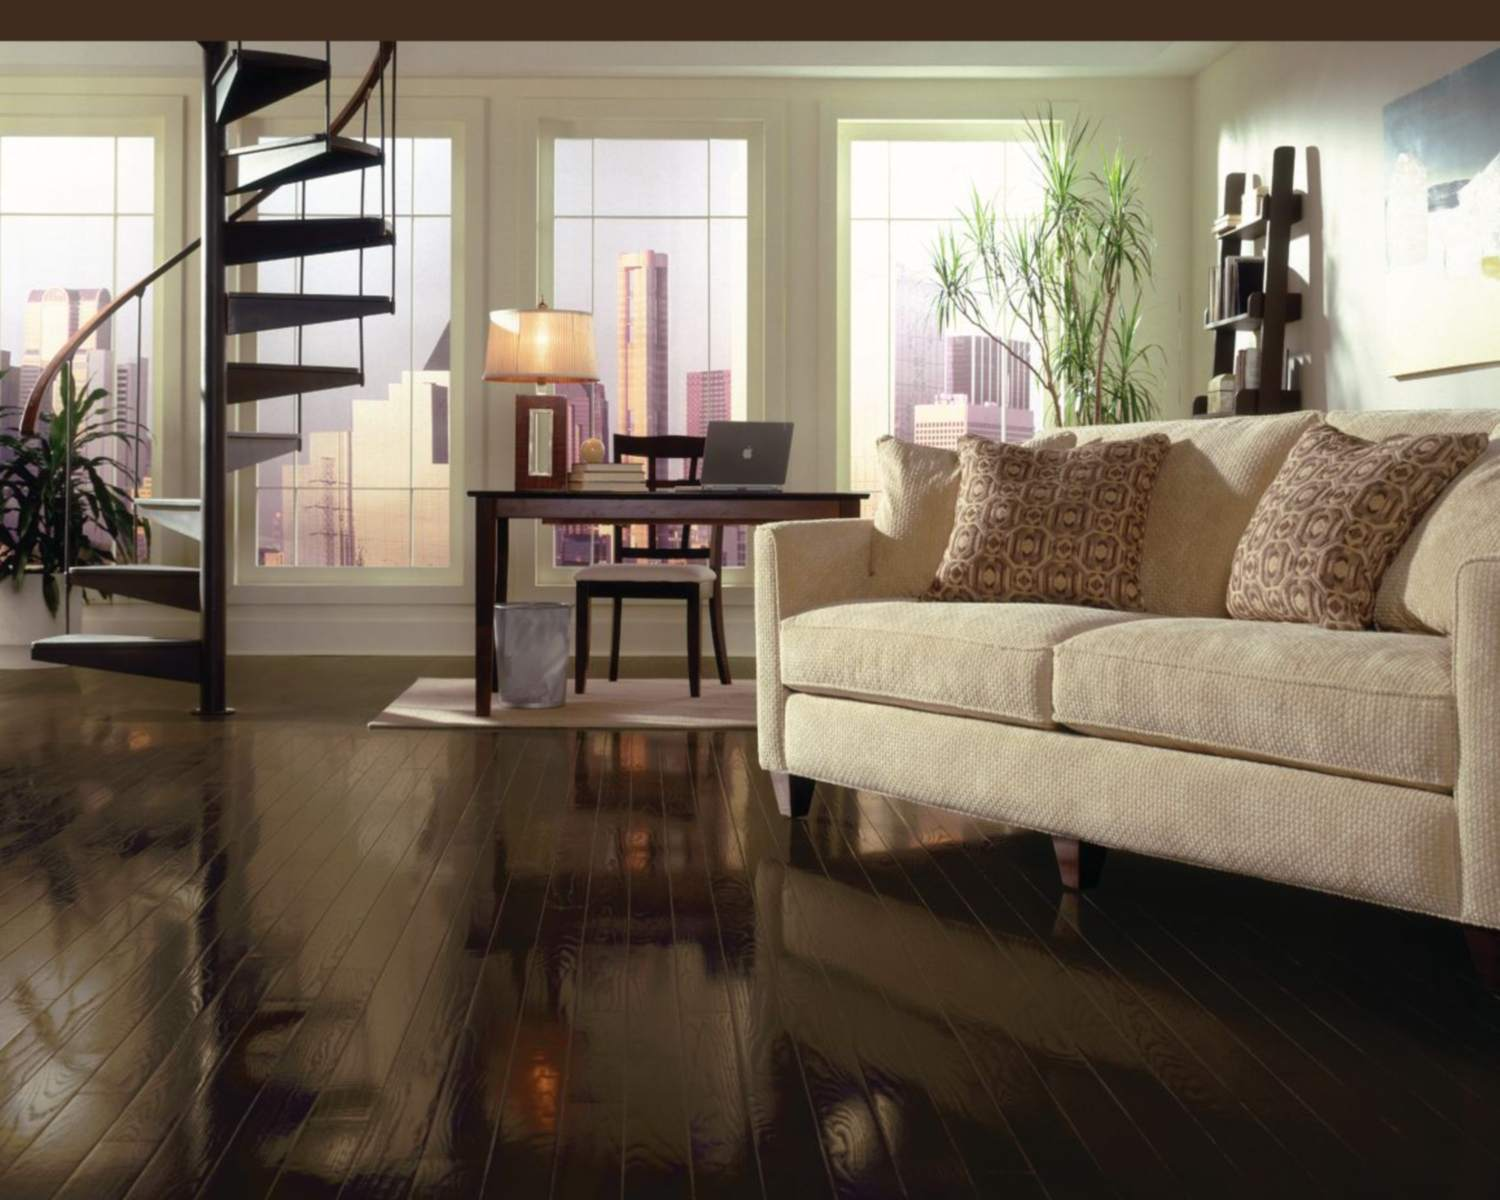 A living room with Bruce Espresso Oak flooring